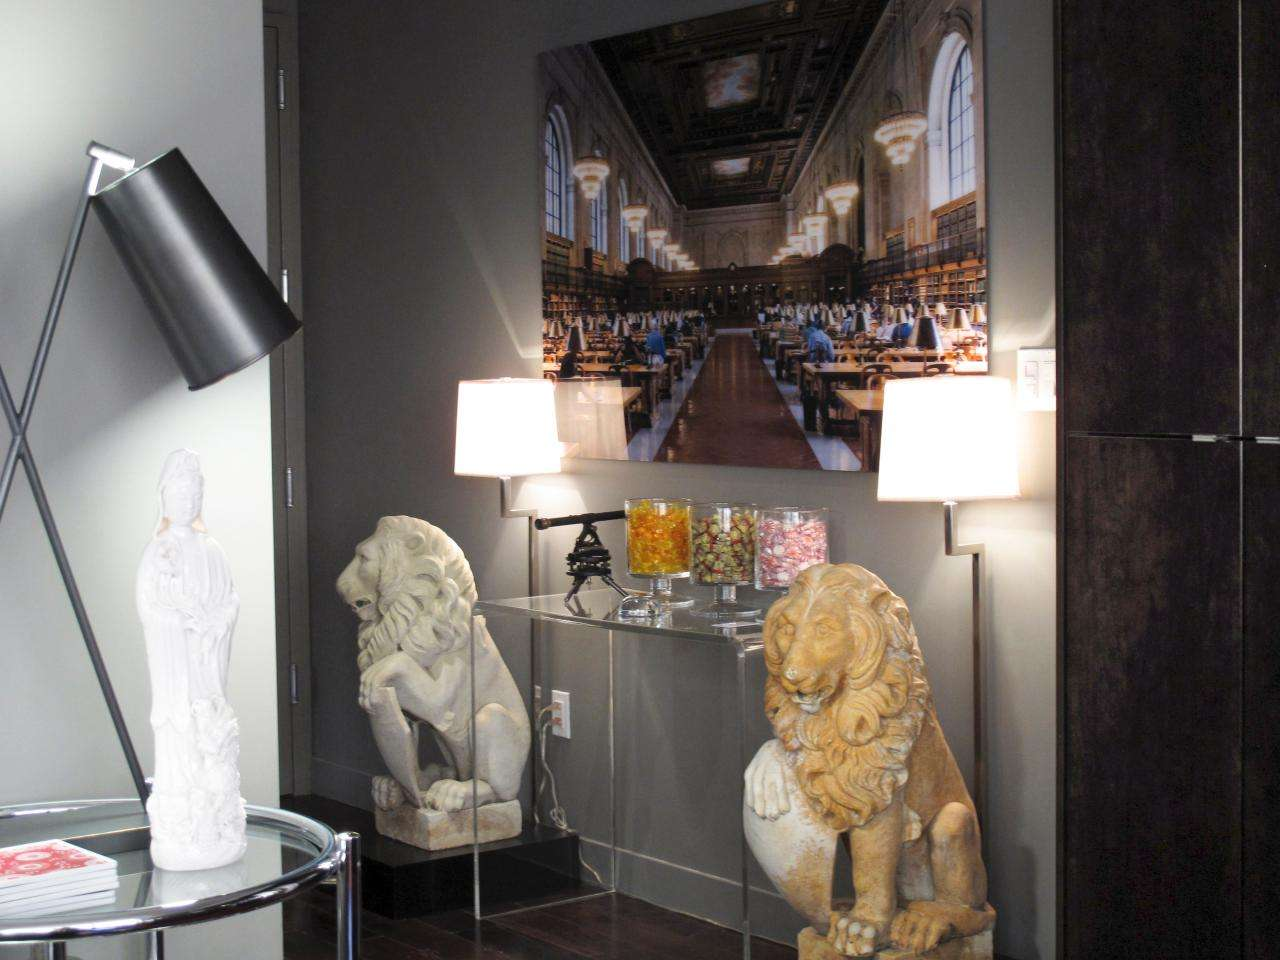 Urban Hallway Lion Sculptures Table Decor Lamps Img